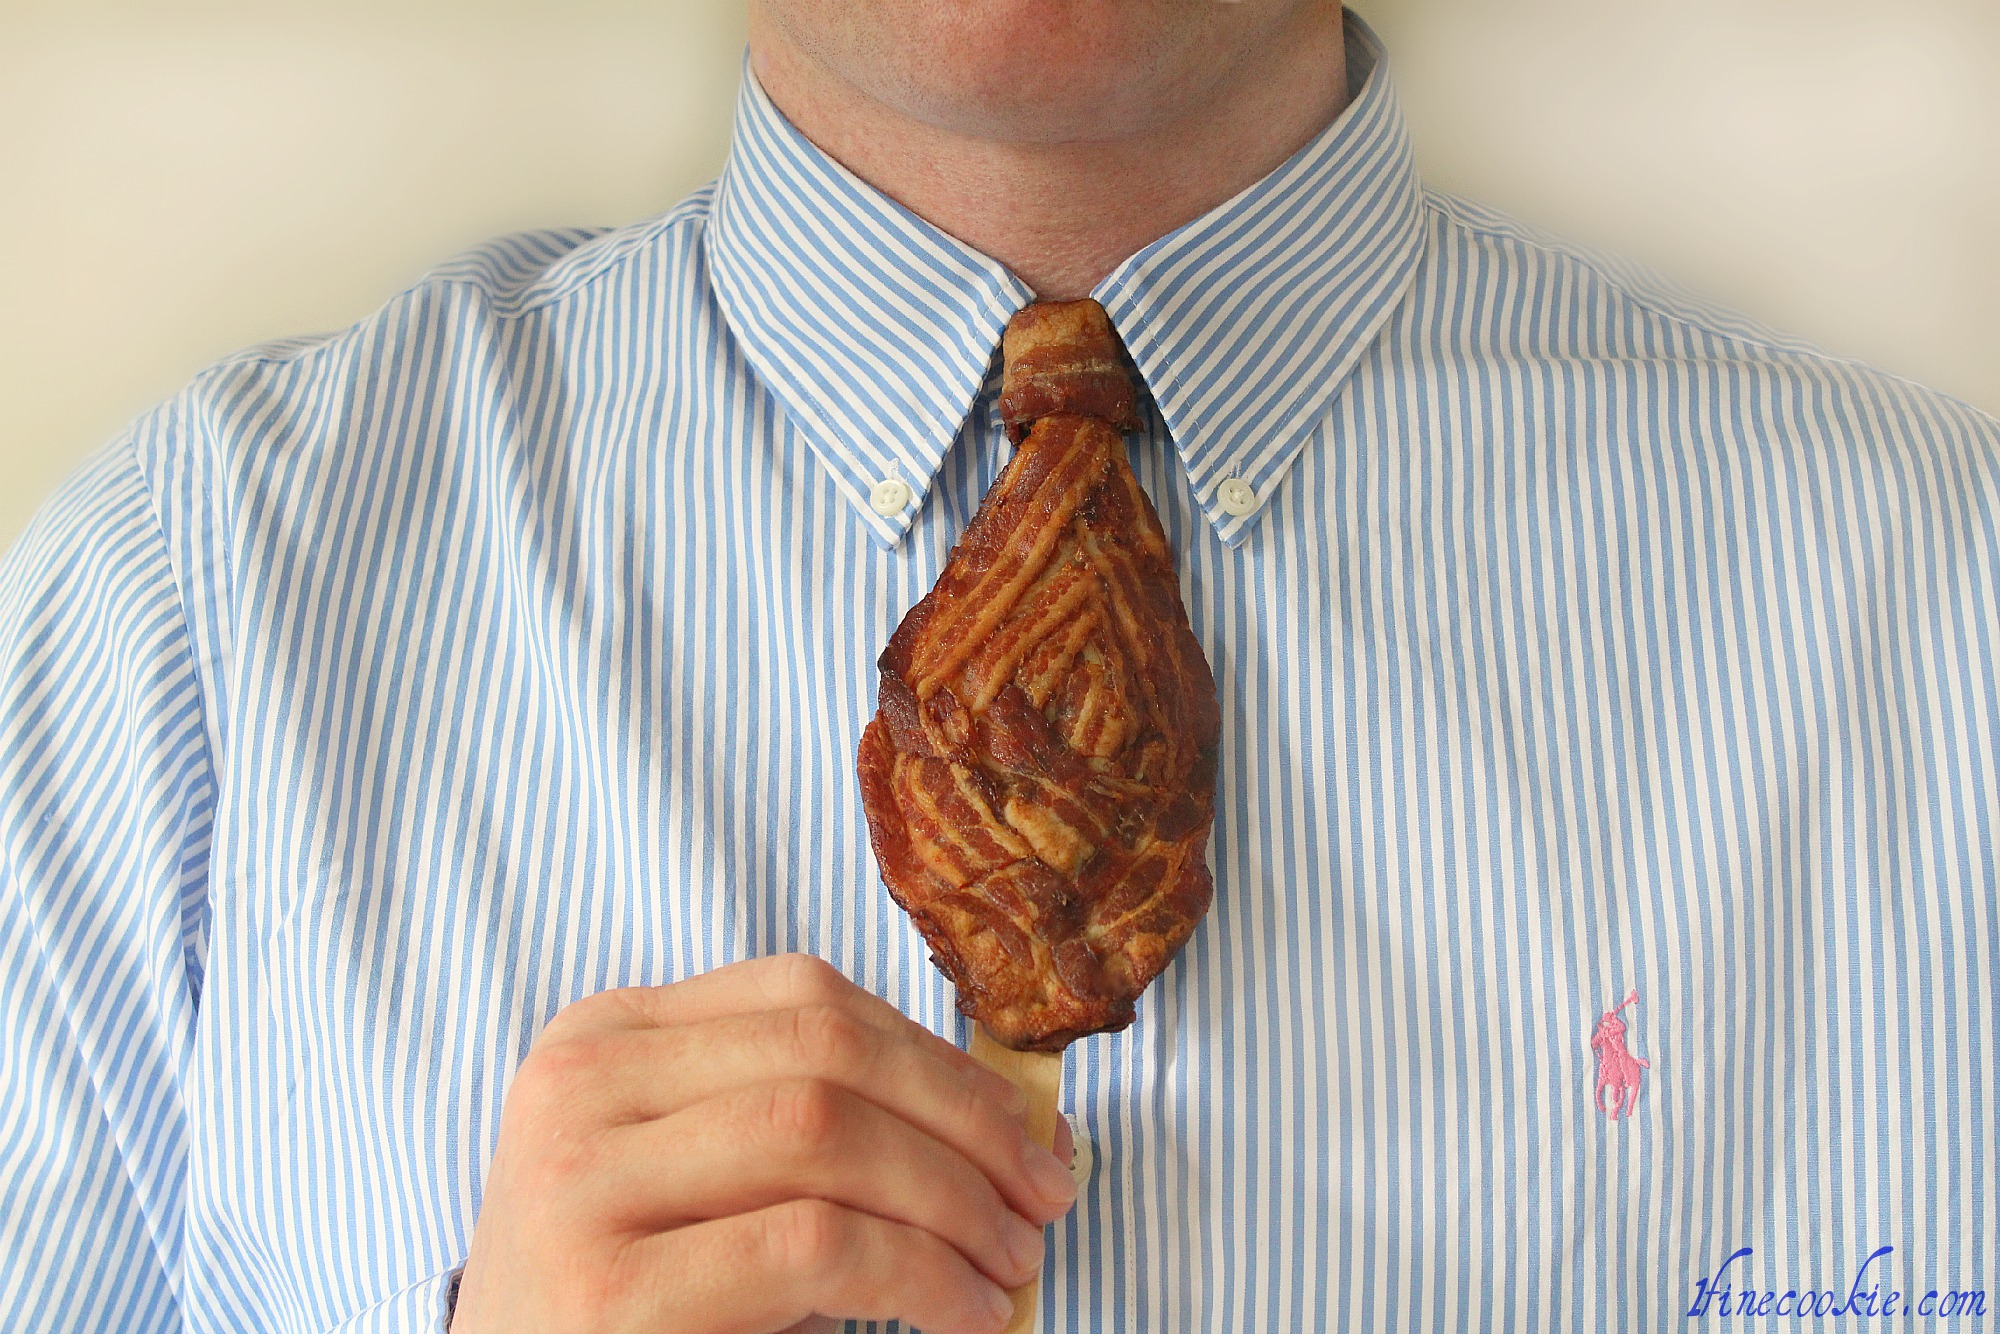 Bacon Mustache And Tie For Breakfast Make Dad Wear And